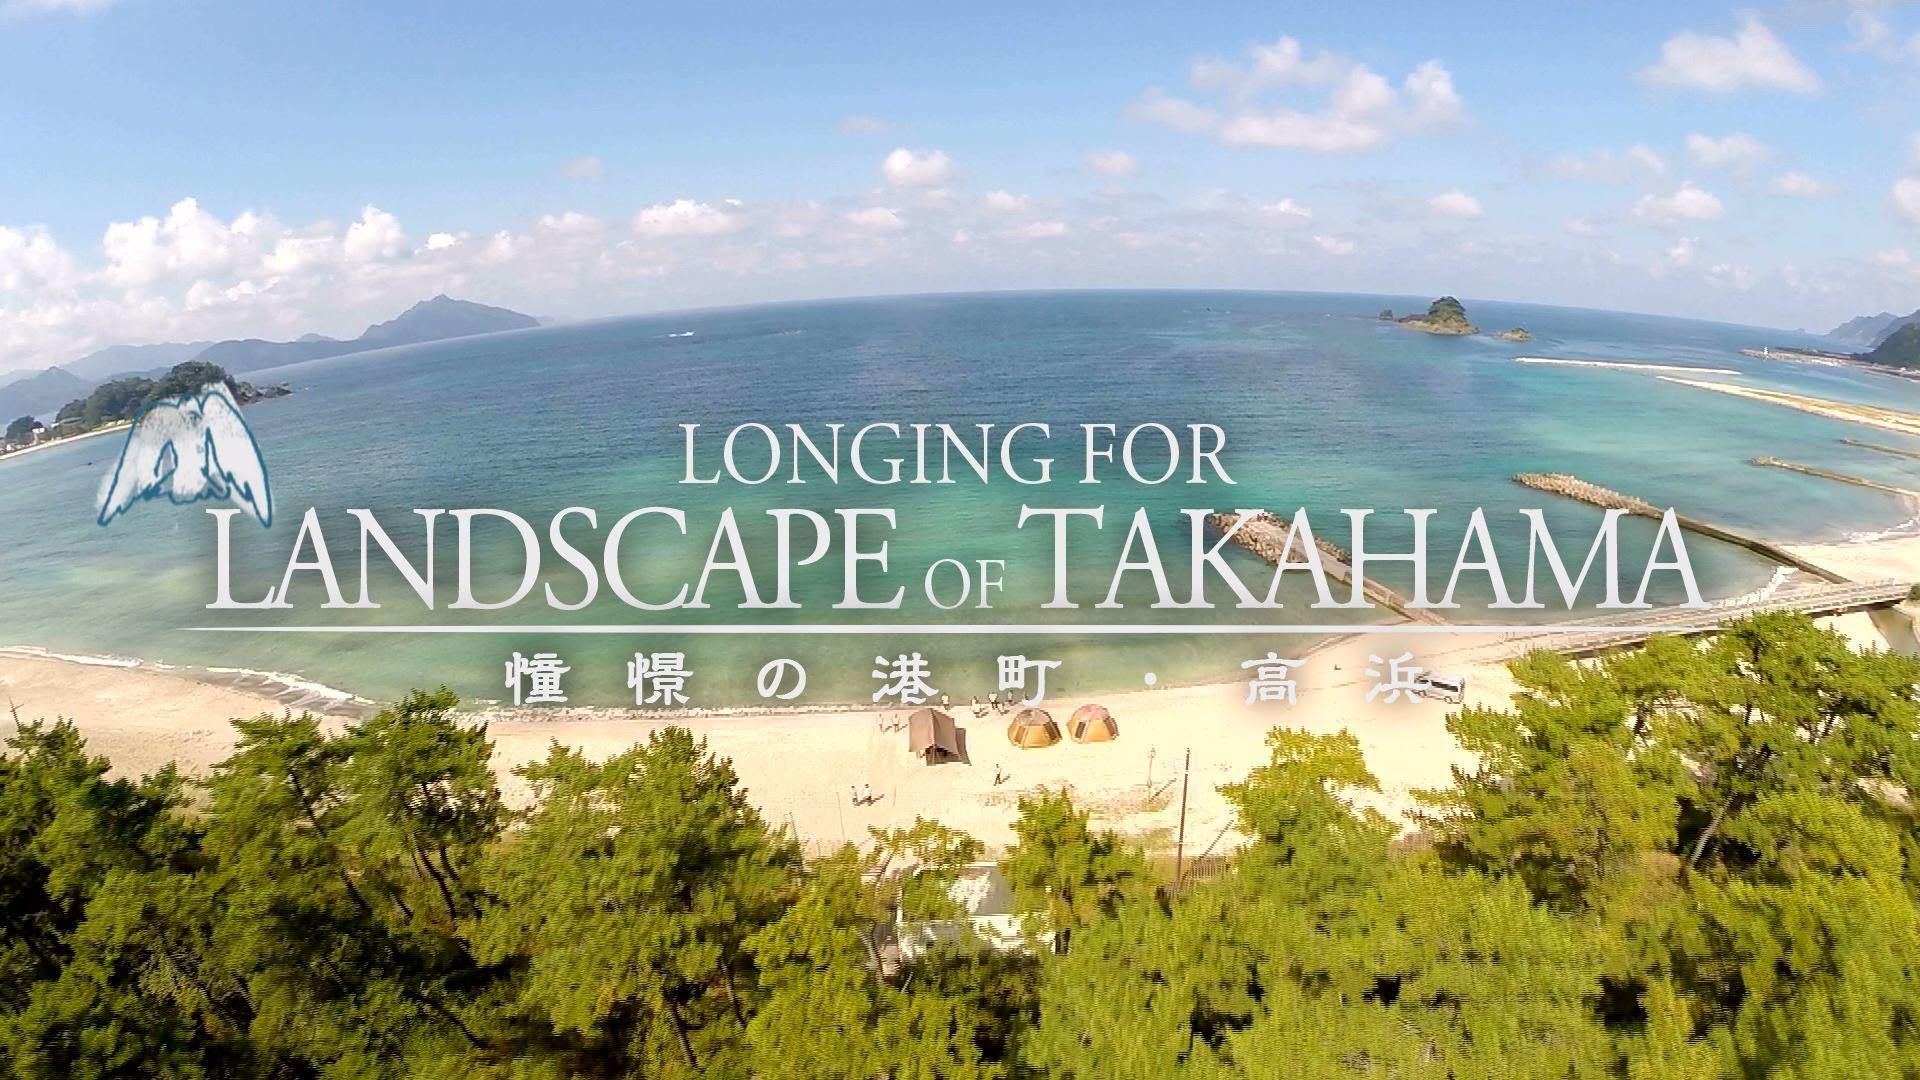 LONGING FOR LANDSCAPE OF TAKAHAMA